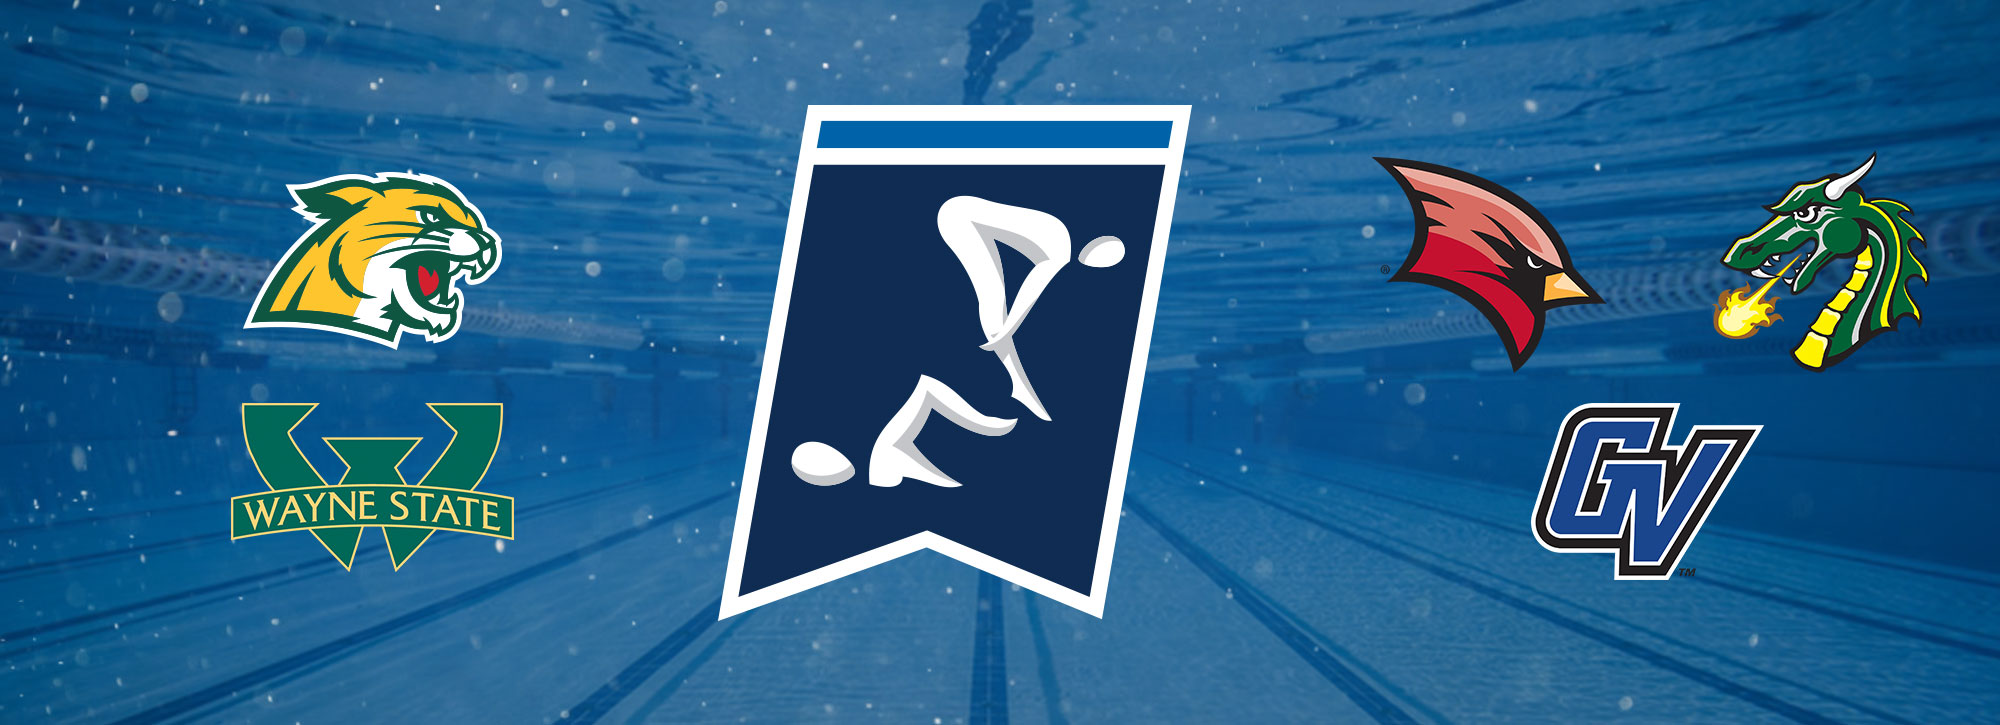 GLIAC Swimmers & Divers Earn Trip to North Carolina for NCAAs